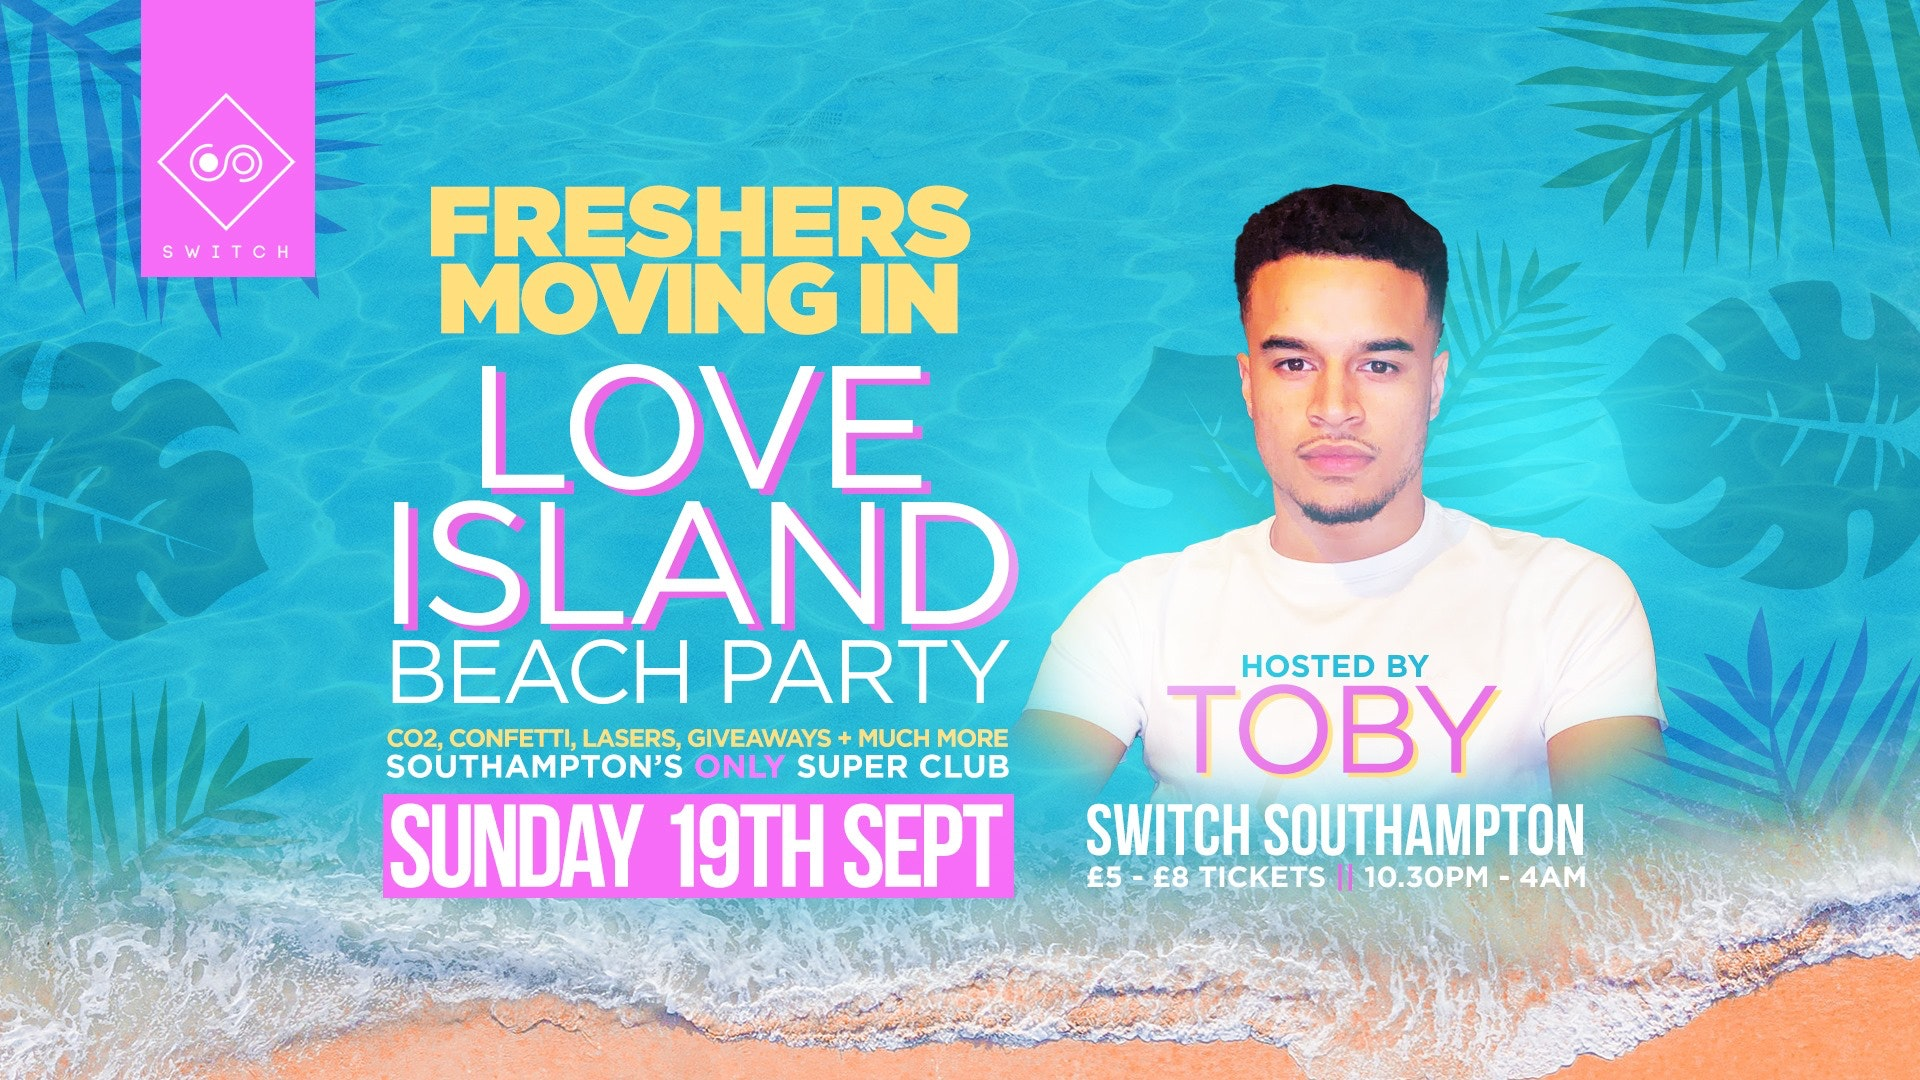 Freshers Moving In Beach Party hosted by Love Island's Toby • Sunday 19th Sept